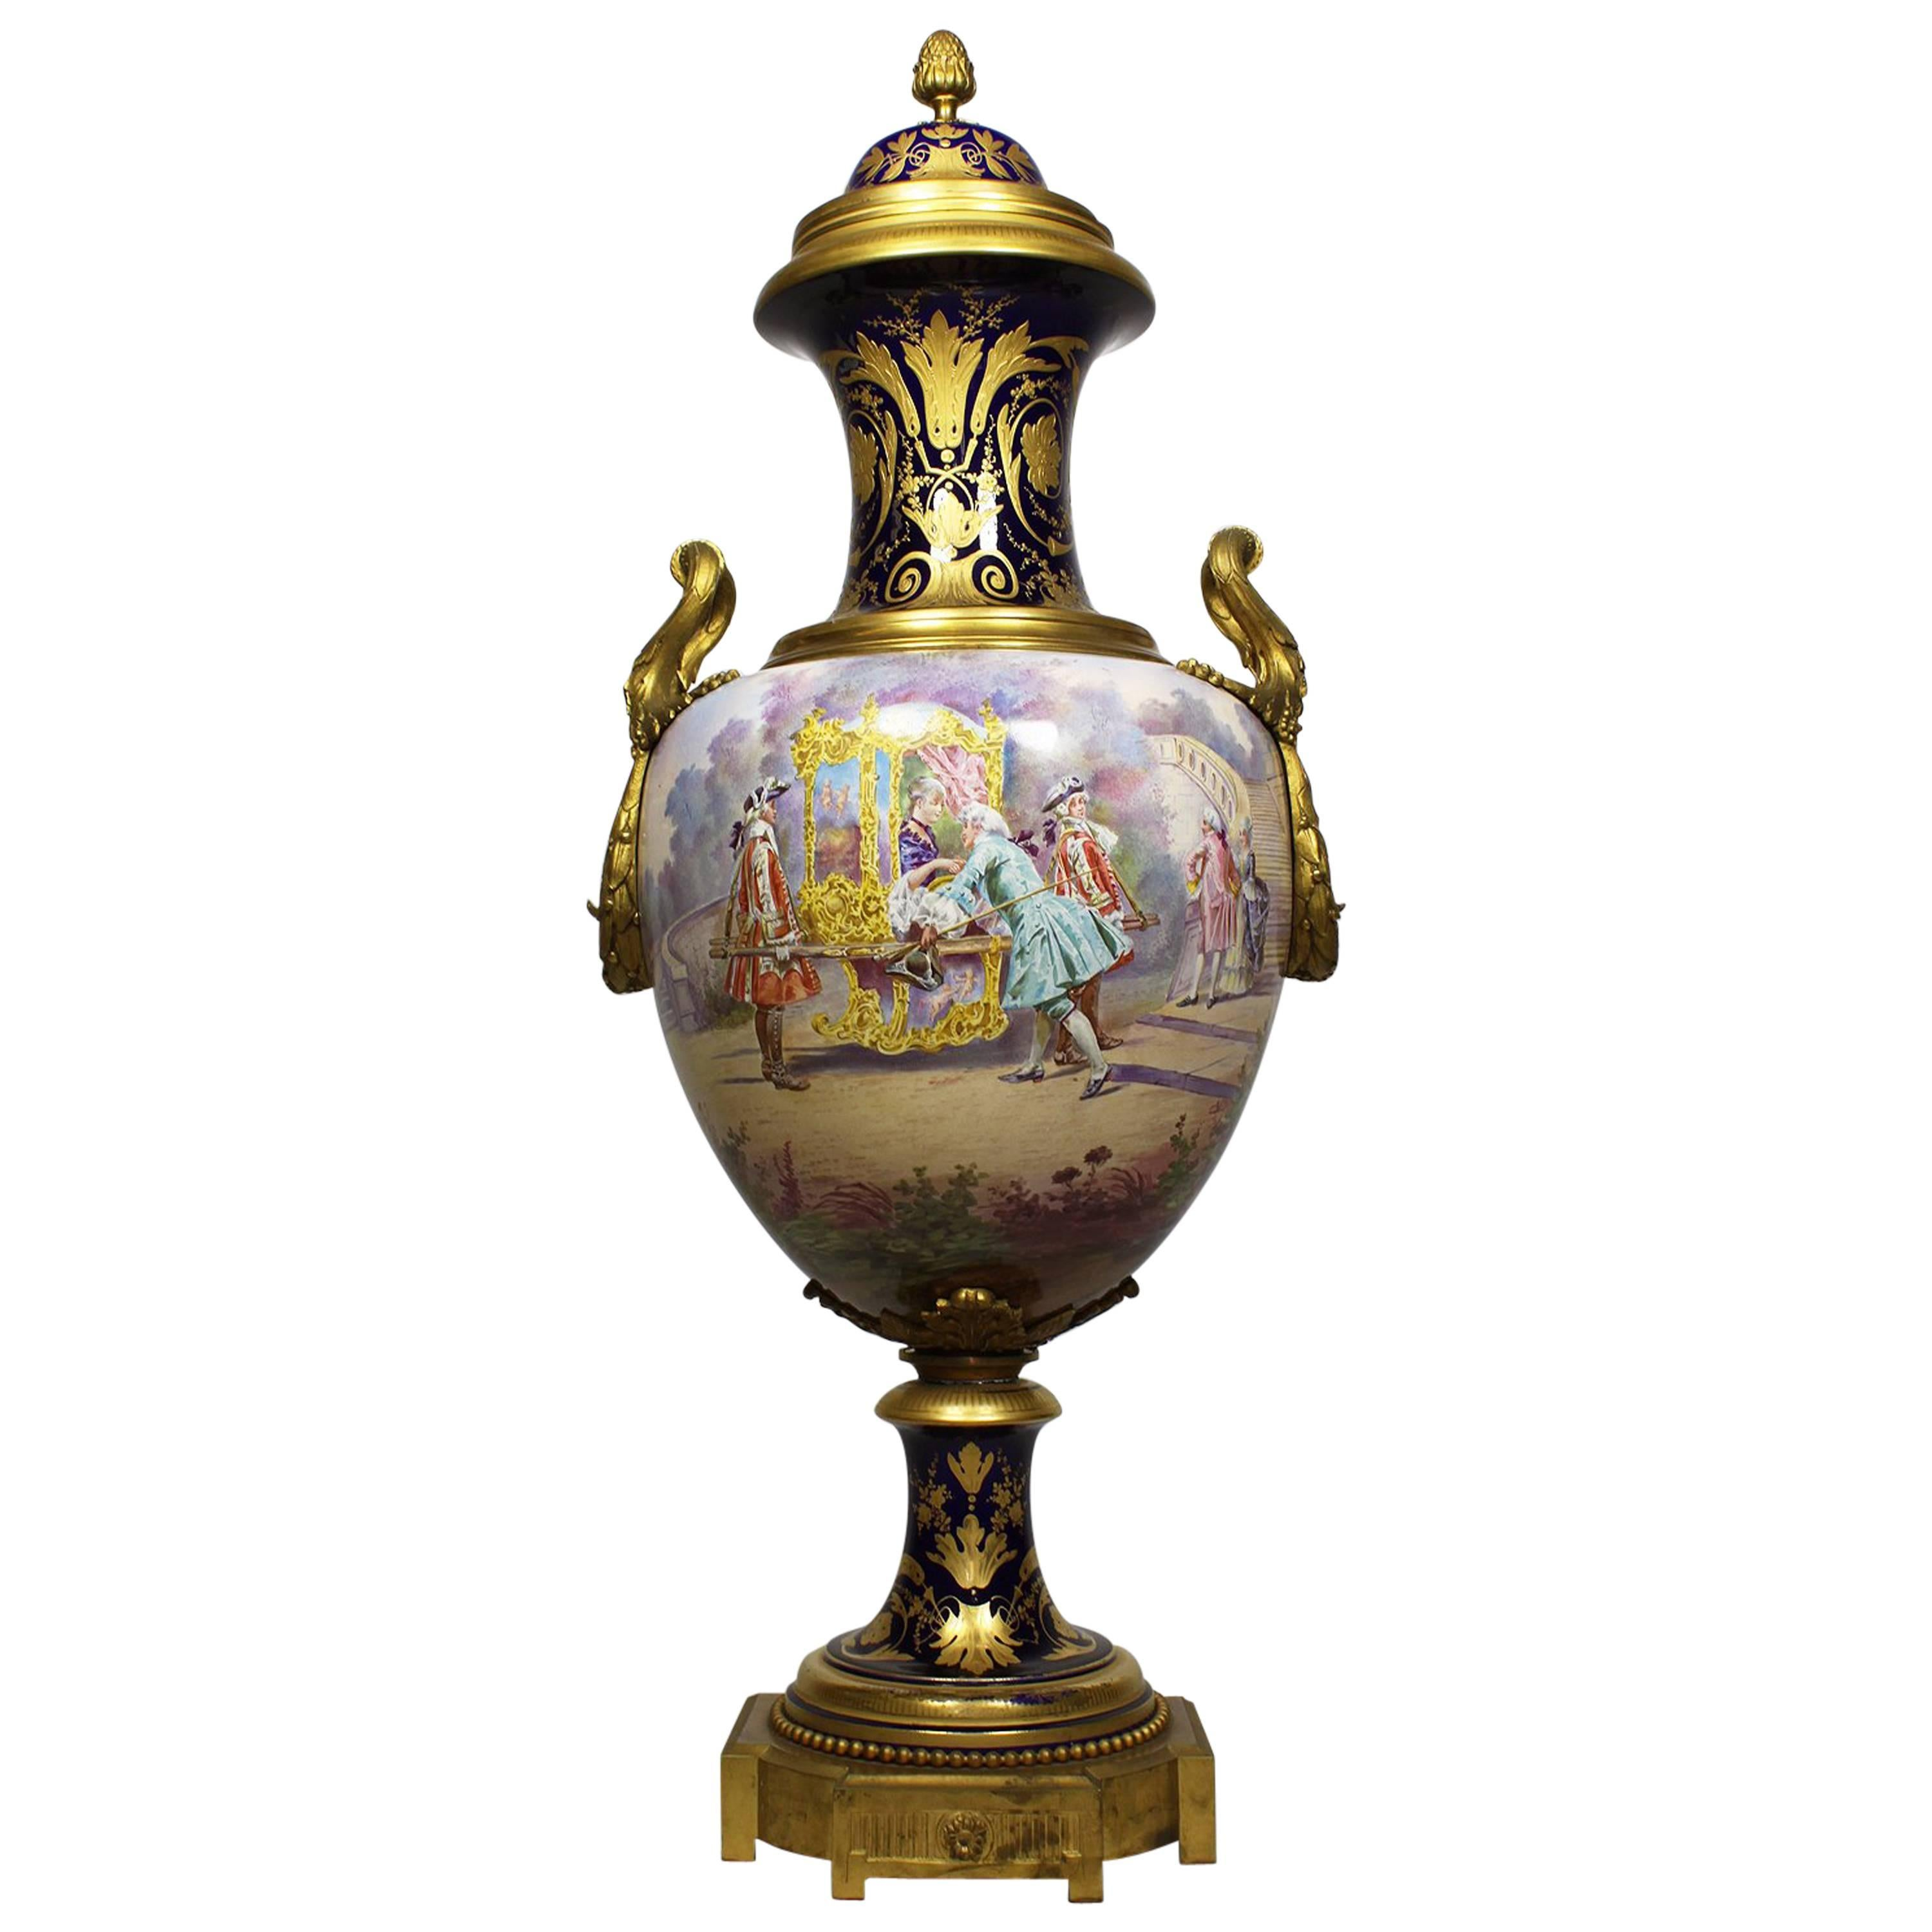 French 19th Century Napoleon III Sévres Style Porcelain and Ormolu Mounted Urn